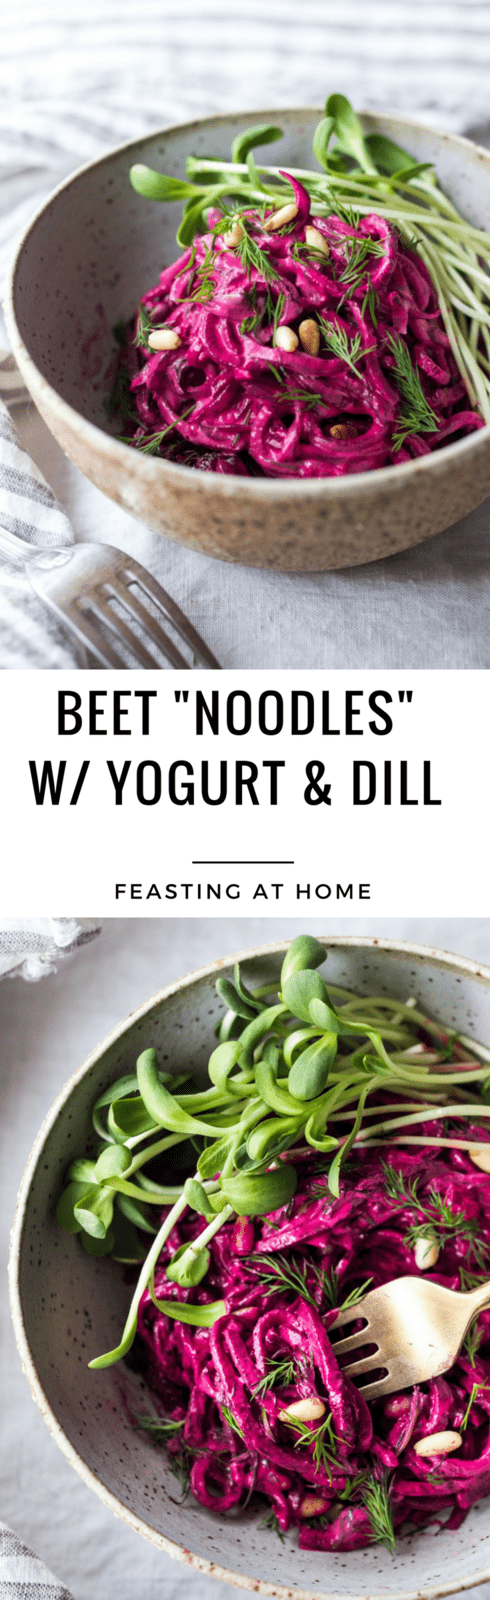 Beet Noodles with Yogurt and Dill - a simple vegetarian, gluten-free meal that can be made in 20 minutes! | www.feastingathome.com #beetnoodles